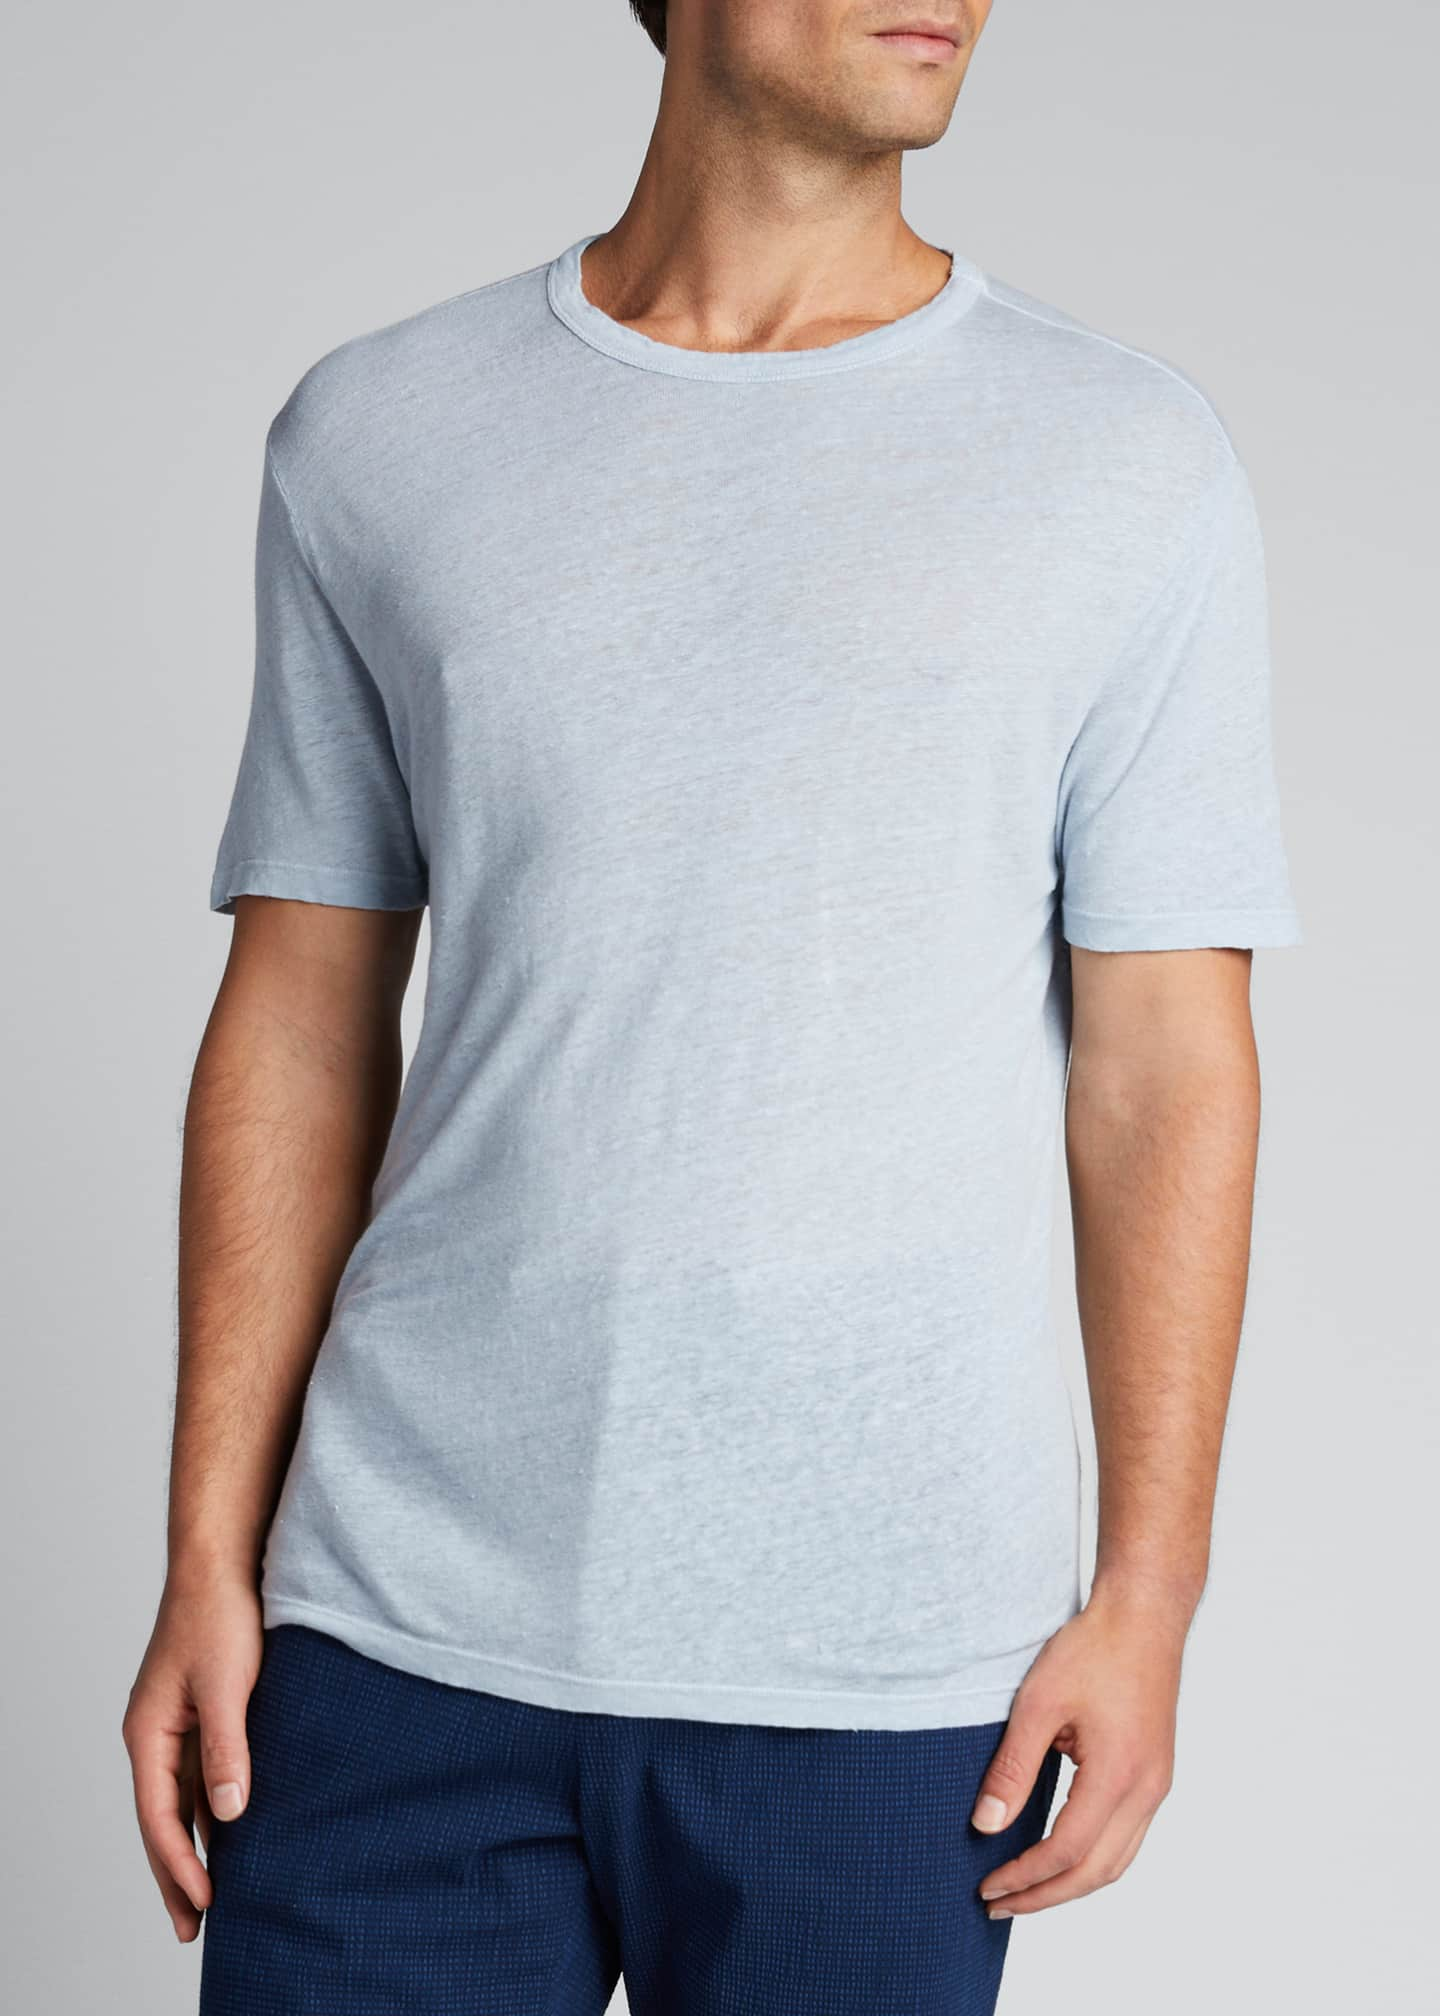 Image 3 of 5: Men's Garment-Dyed Linen Crewneck Tee